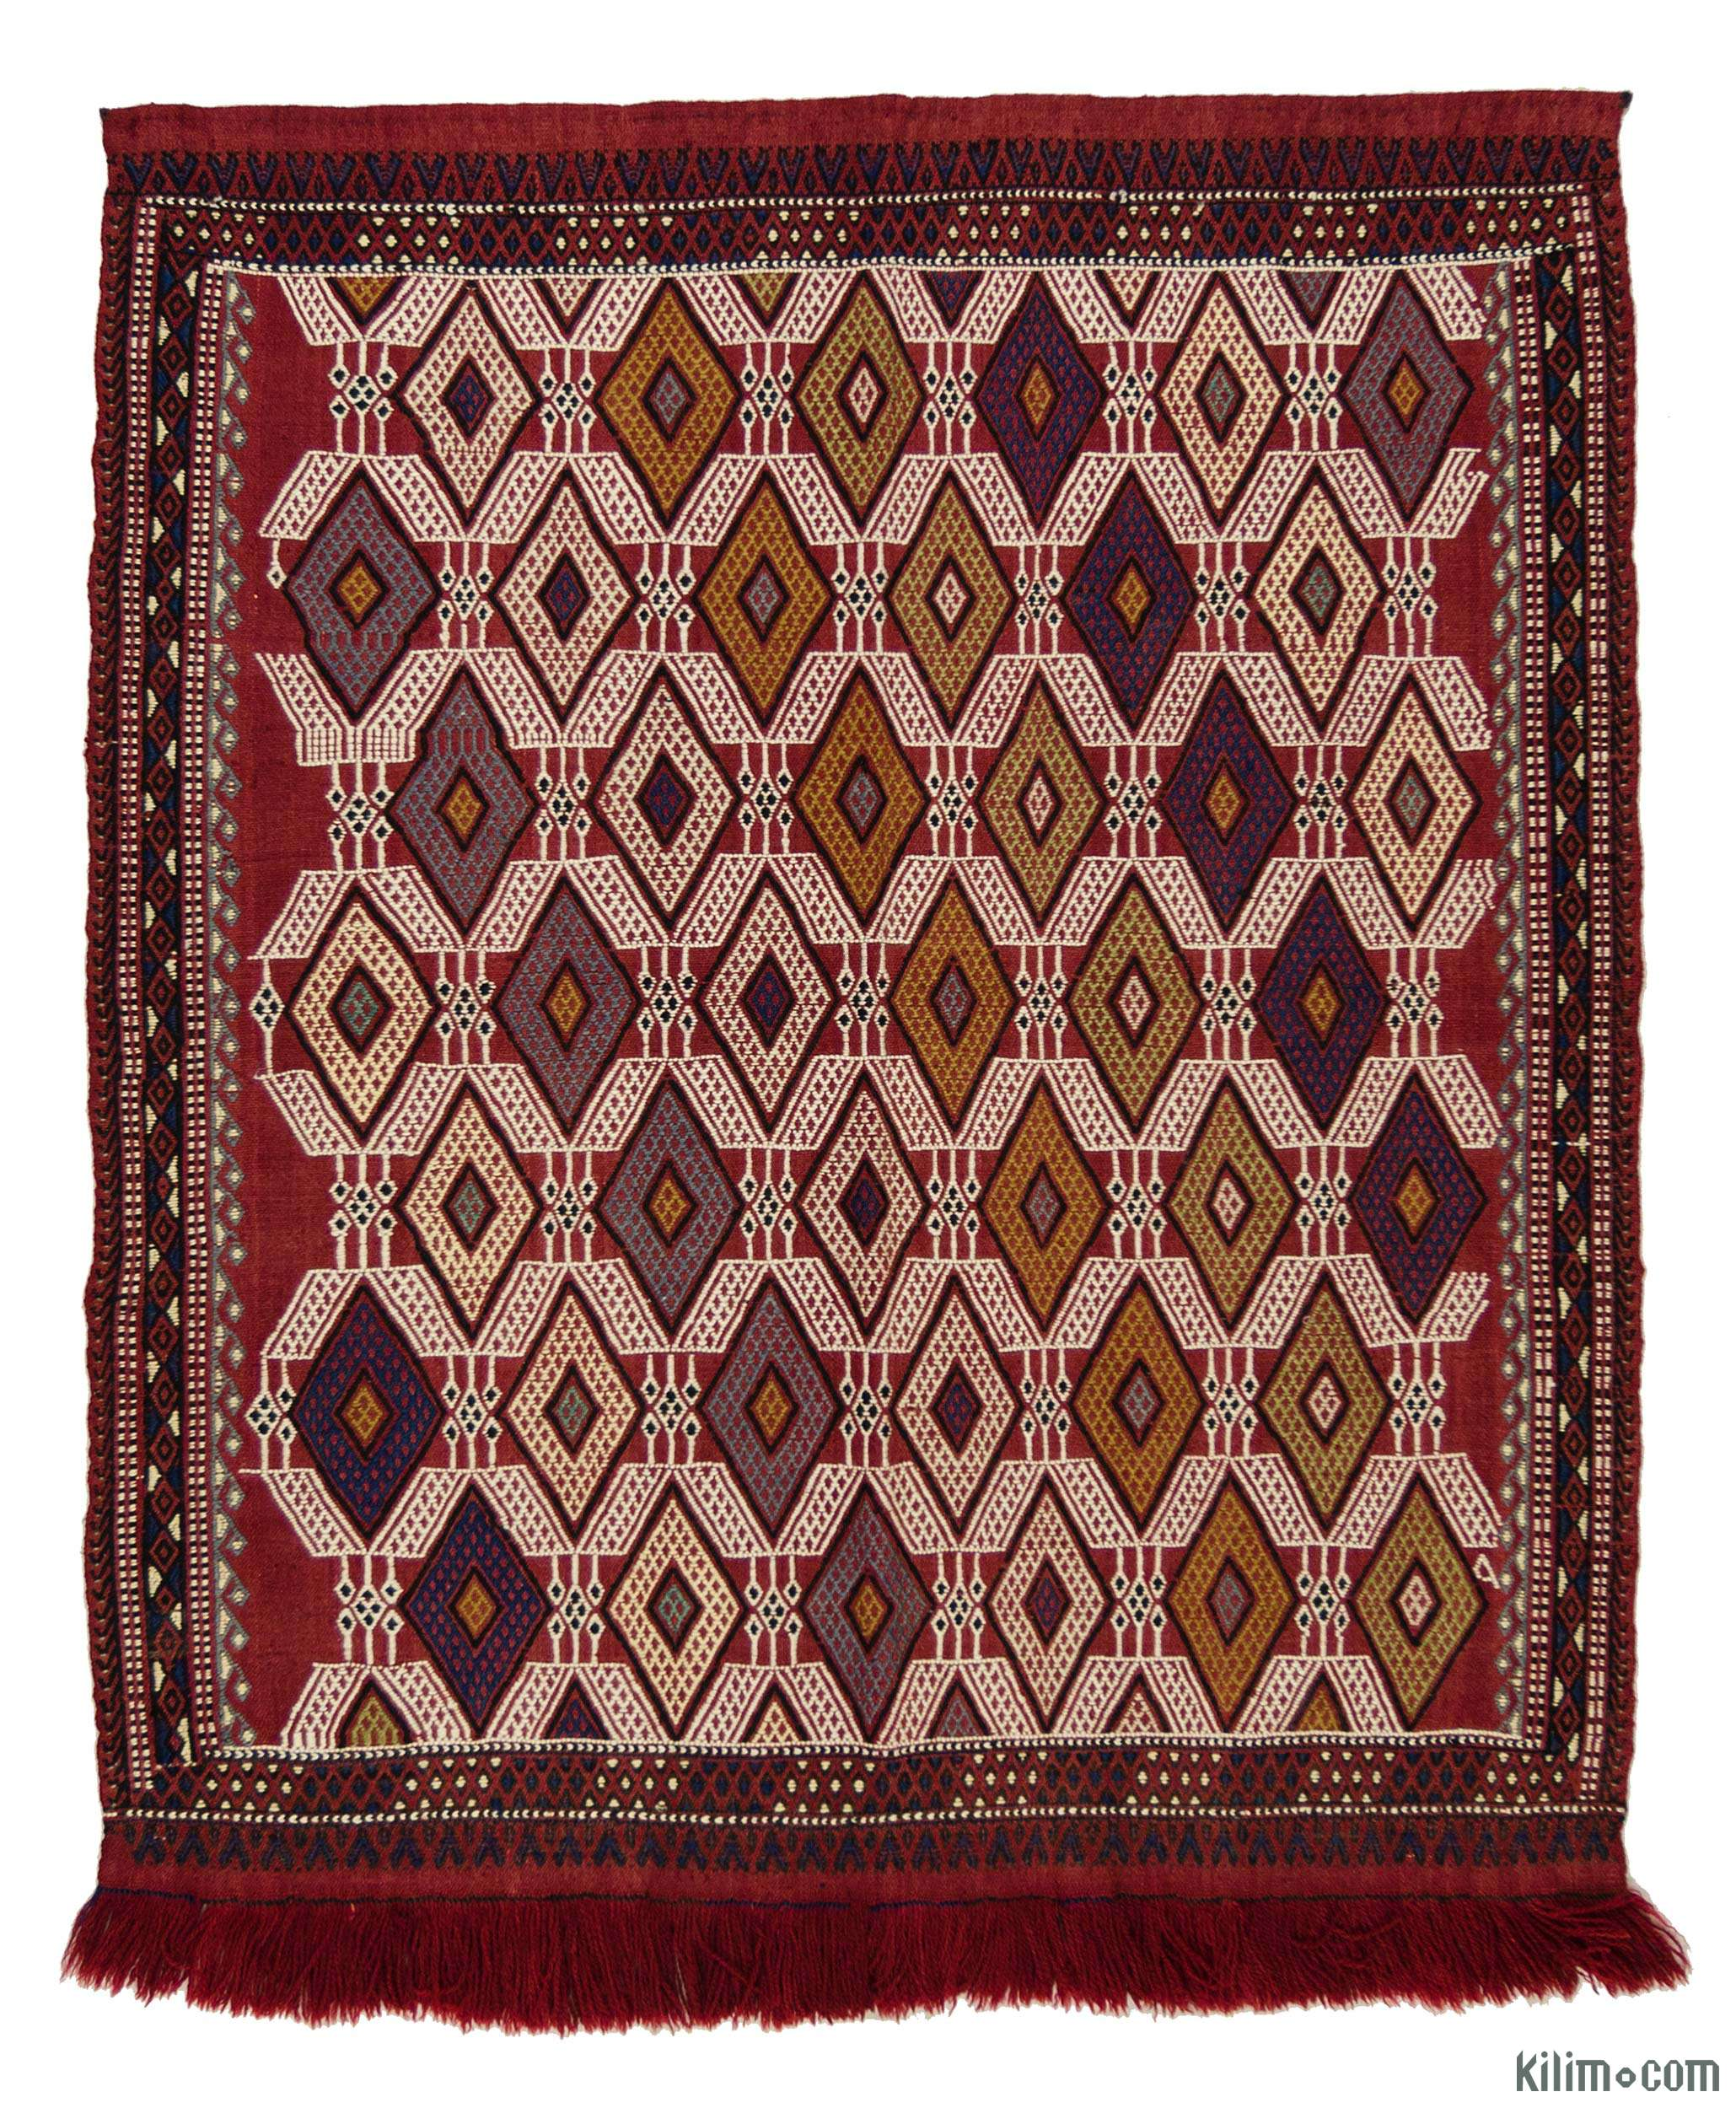 Kilim Rugs, Overdyed Vintage Rugs, Hand-made